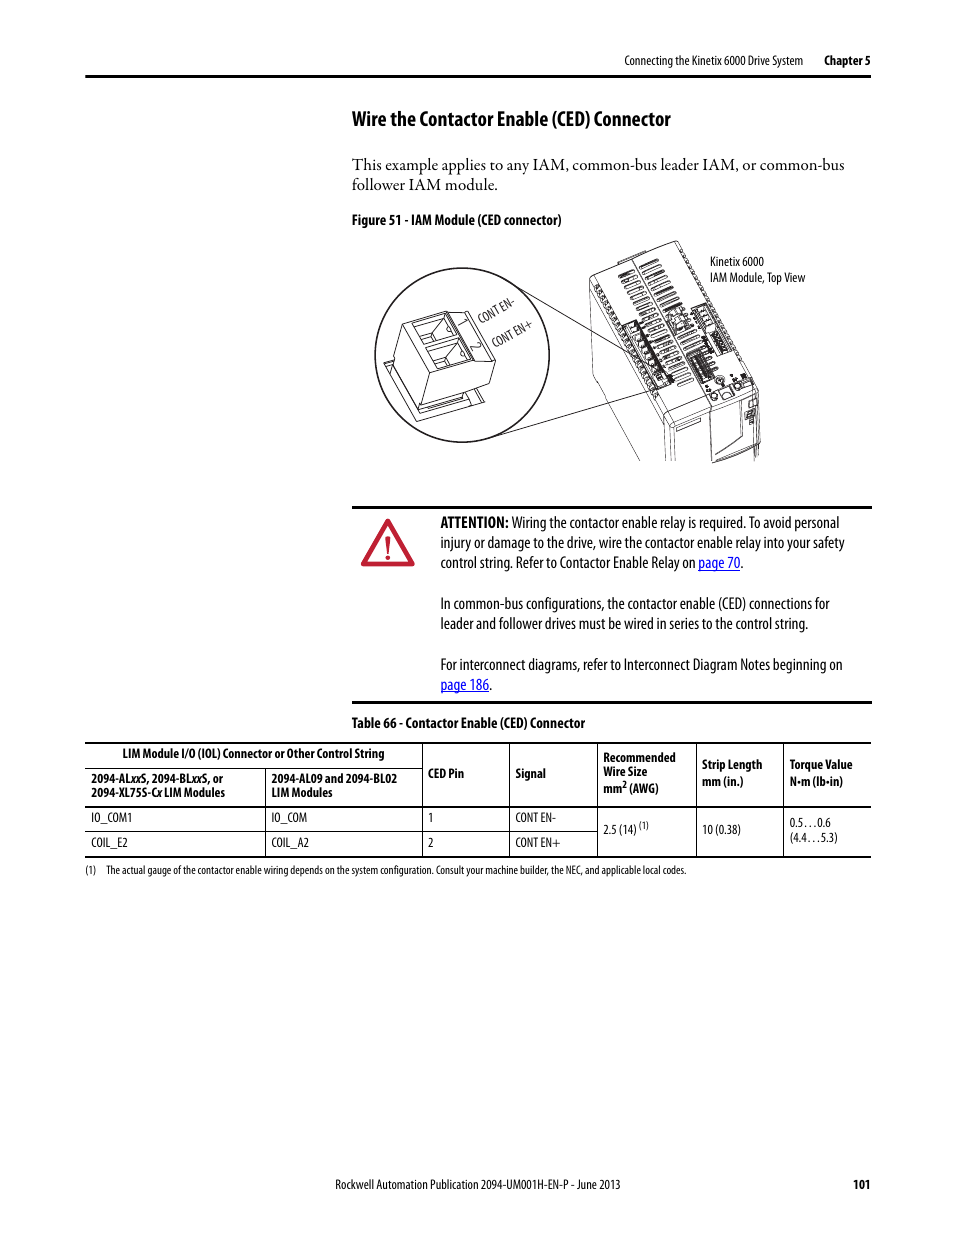 Wire The Contactor Enable Ced Connector Rockwell Automation 2094 Drive By Wiring Diagram Xmxx S Kinetix 6000 Multi Axis Servo Drives User Manual Page 101 286